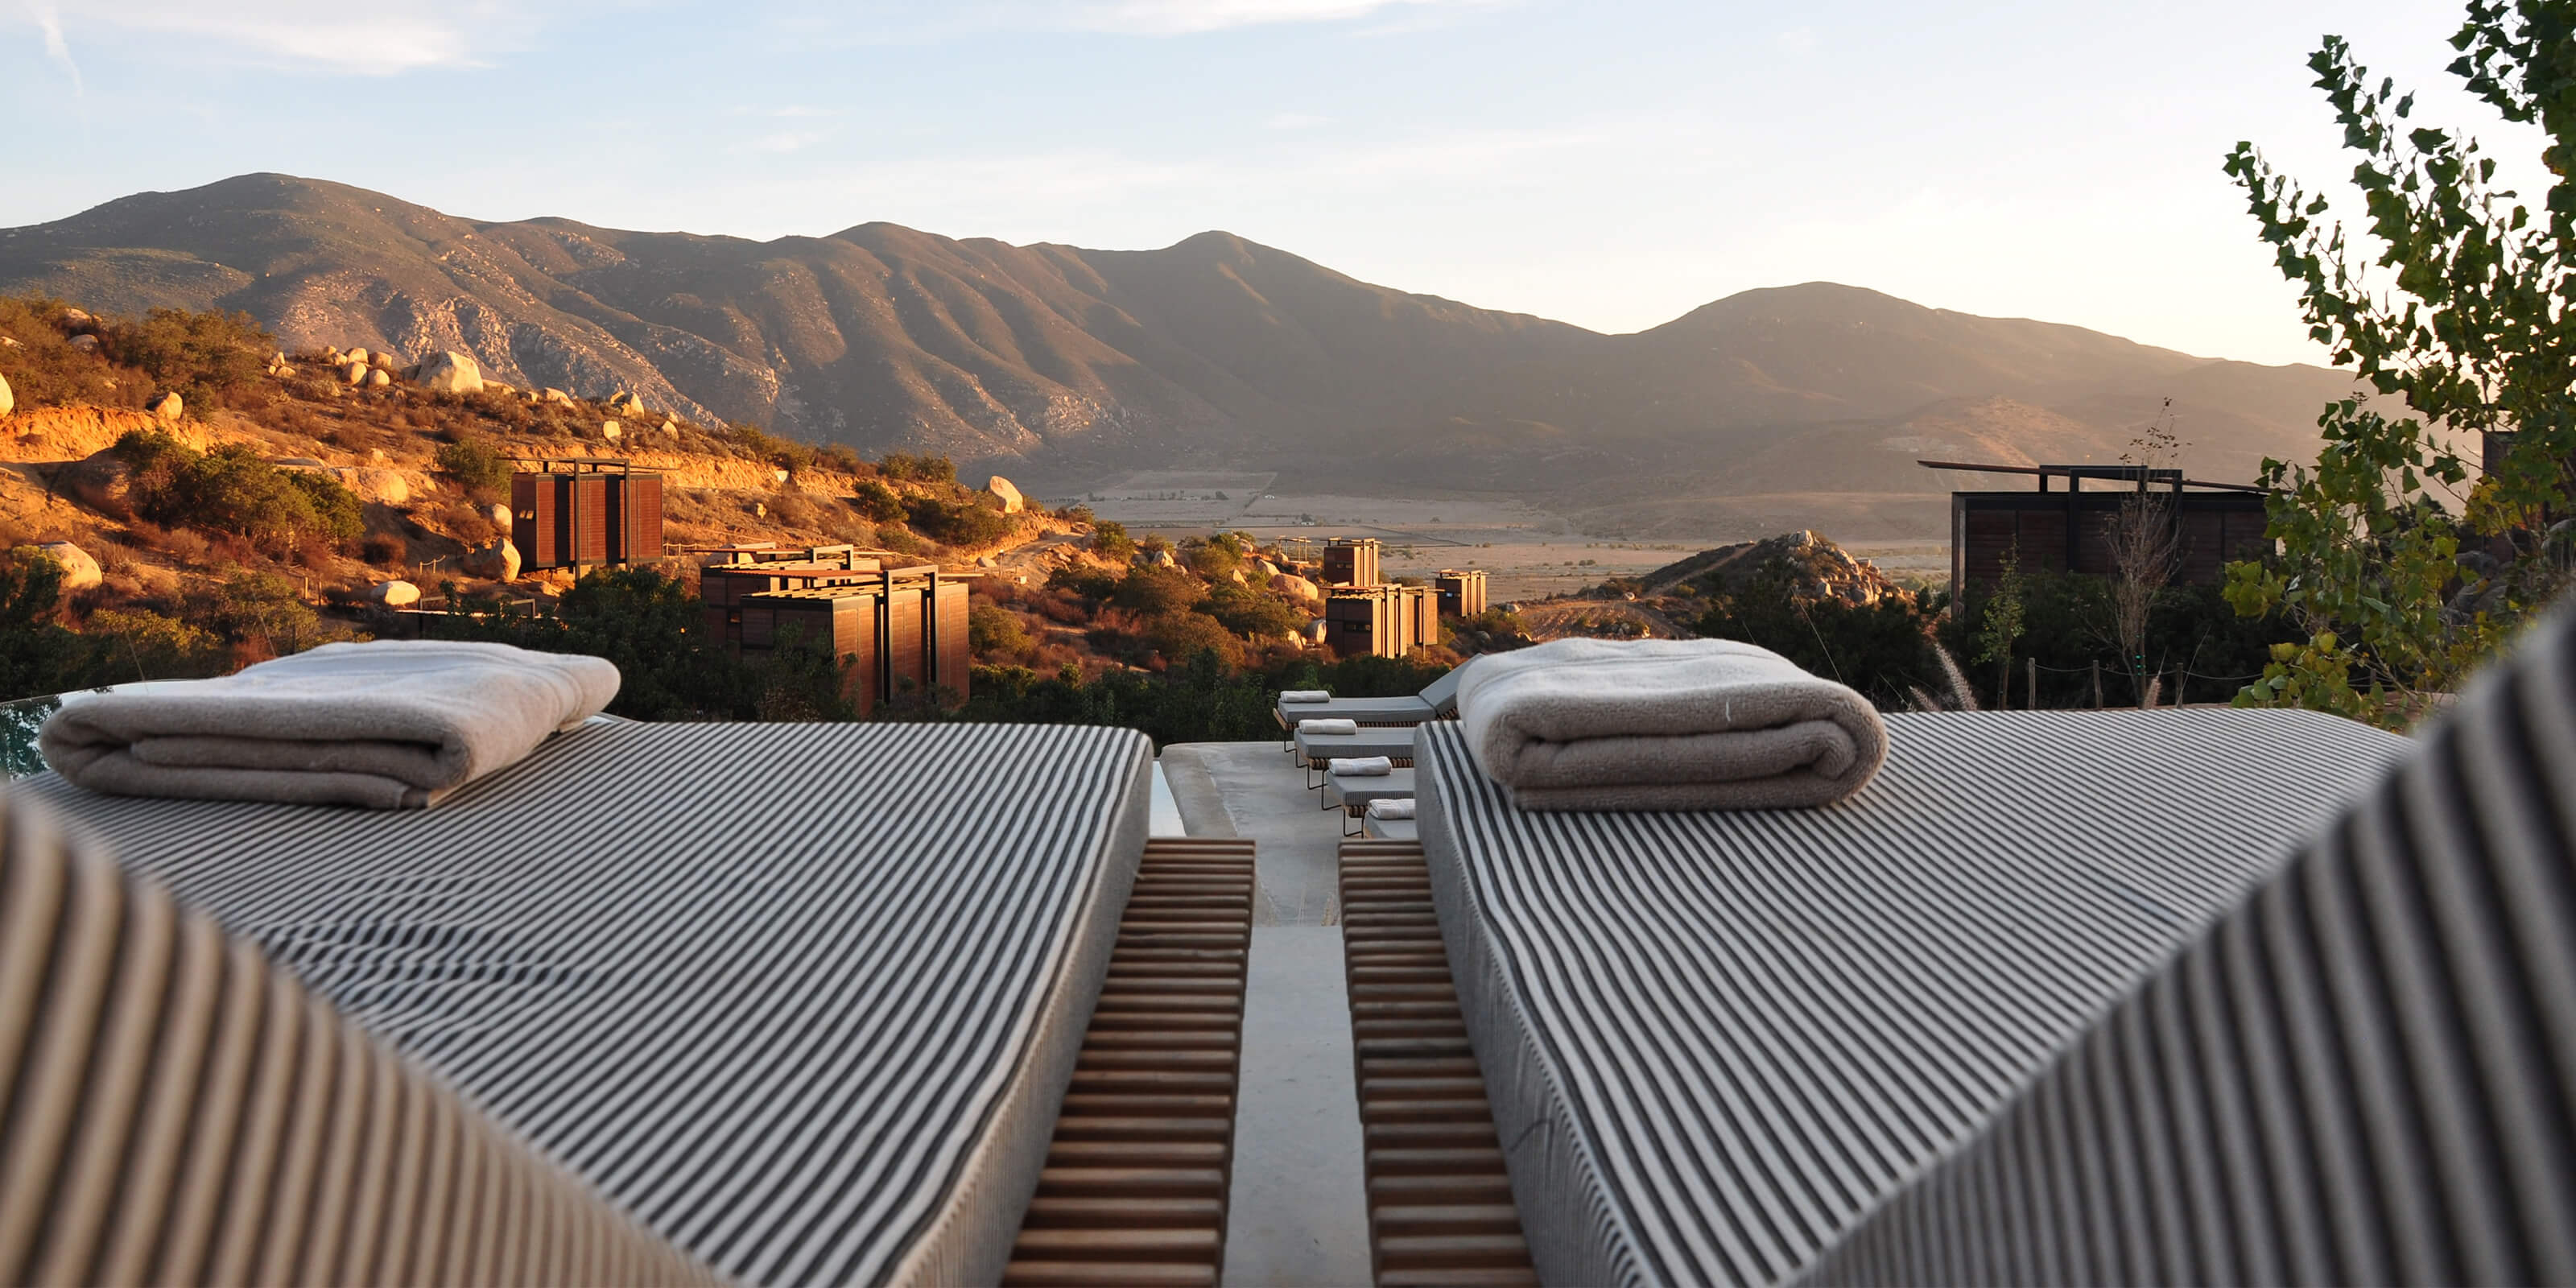 hotel balcony, lawn chairs, mountain view